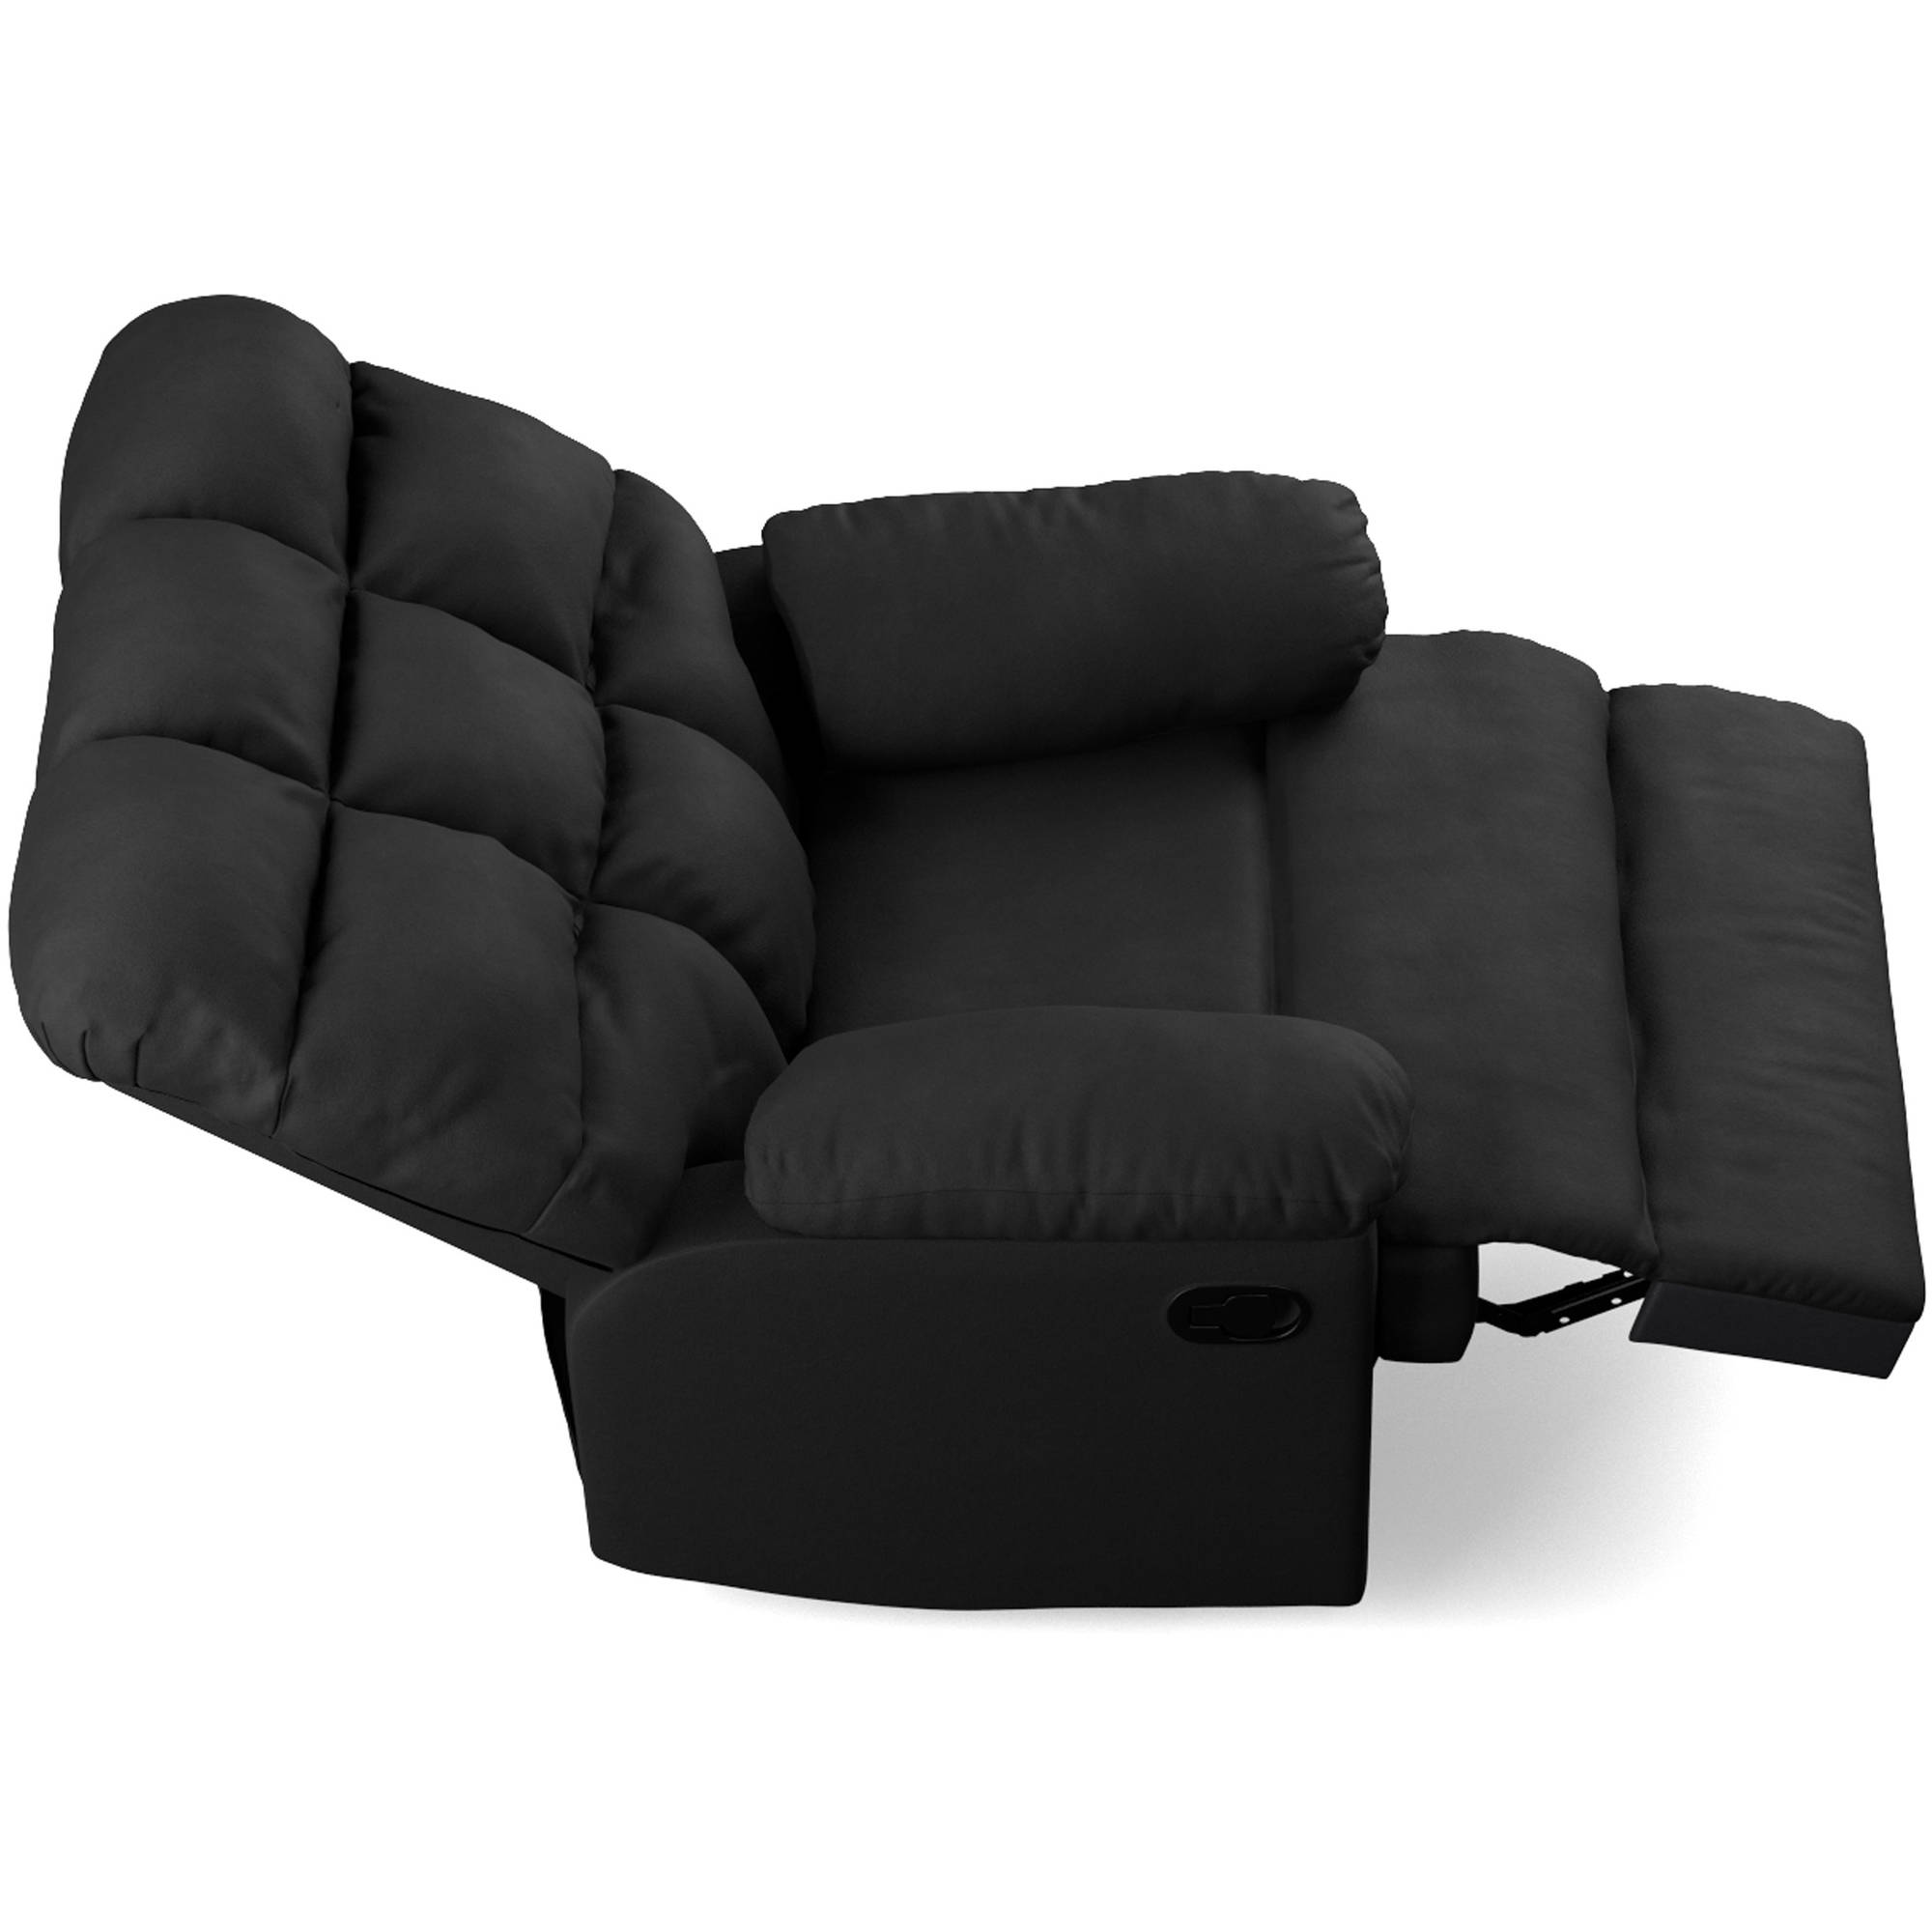 Ergonomic Living Room Chair Living Room Recliner Chair Reclining Sofa Home High Back